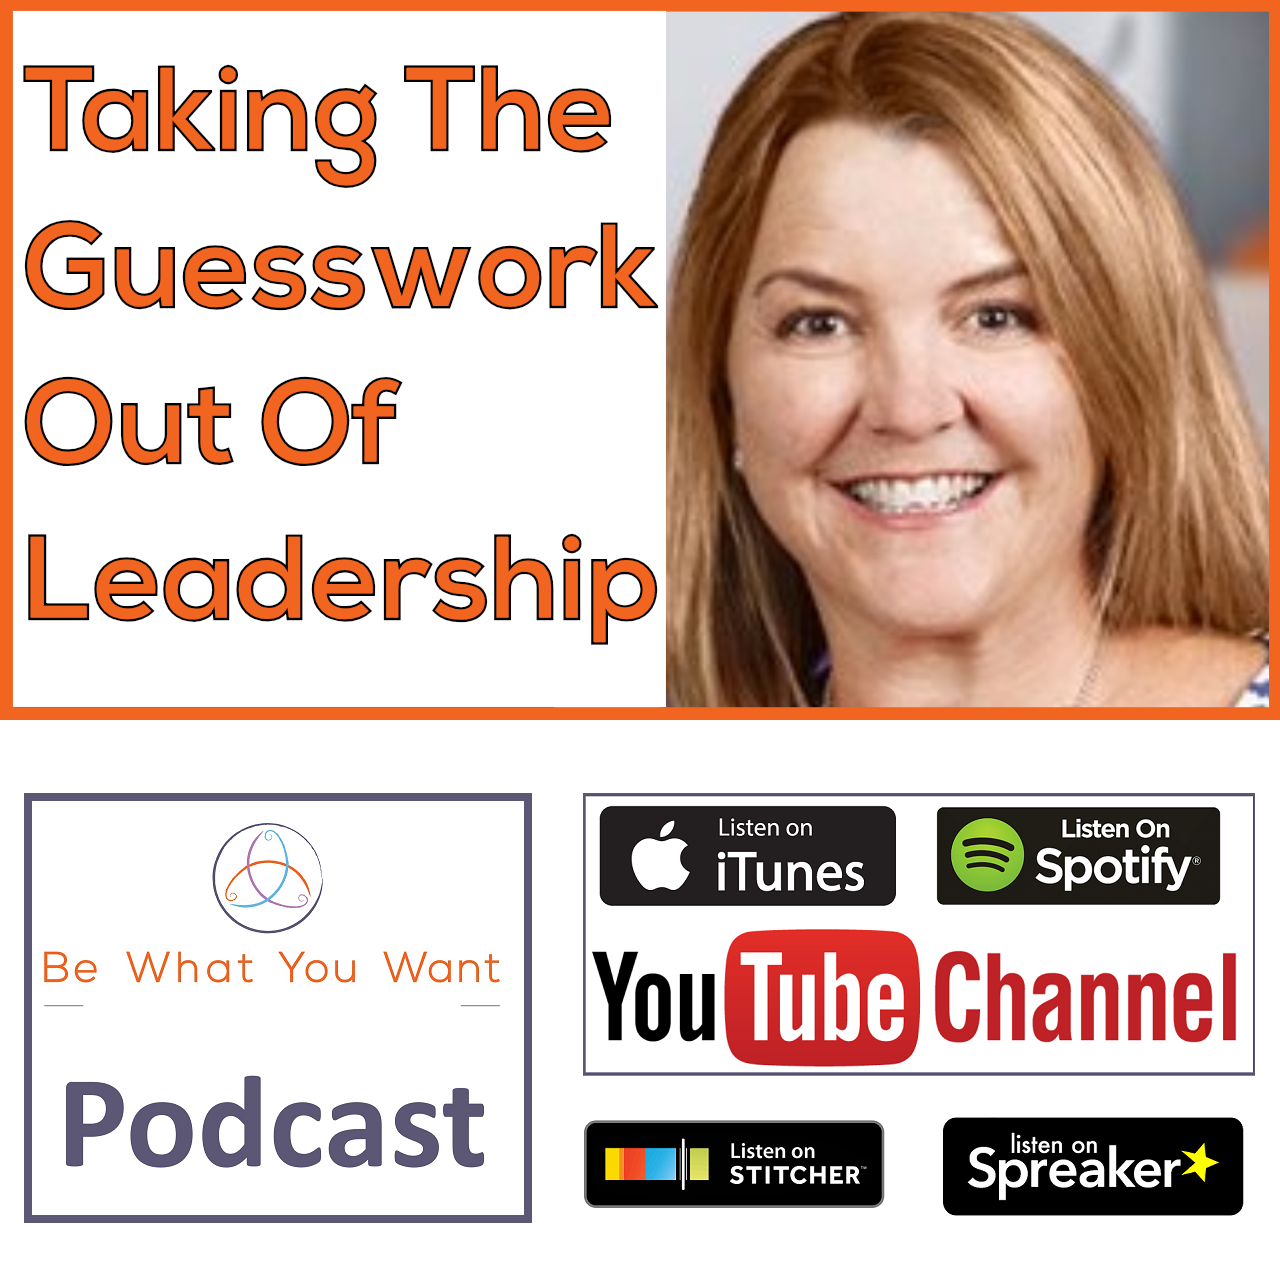 Taking The Guesswork Out Of Leadership